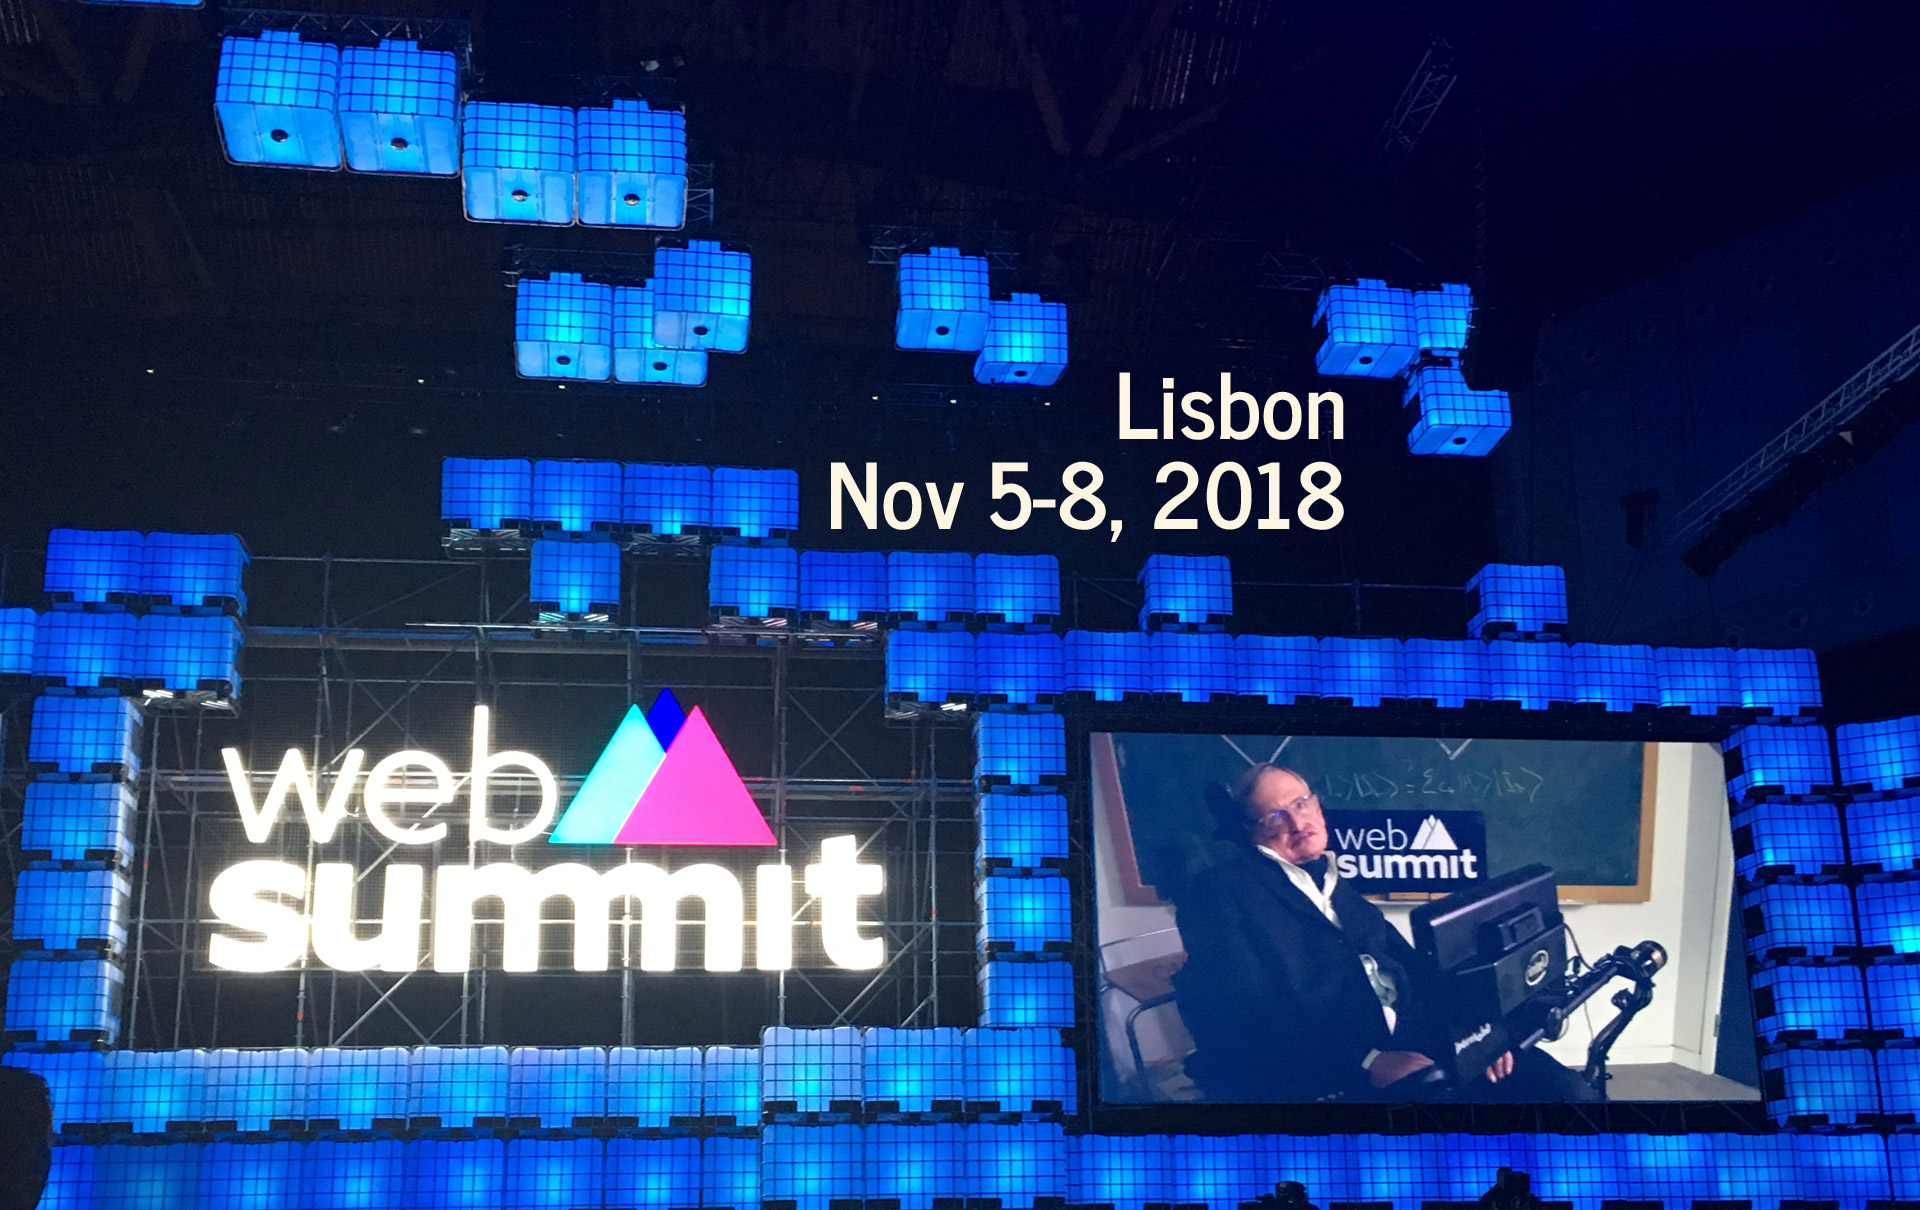 Web Summit 2018 Lisbon Nov 5-8